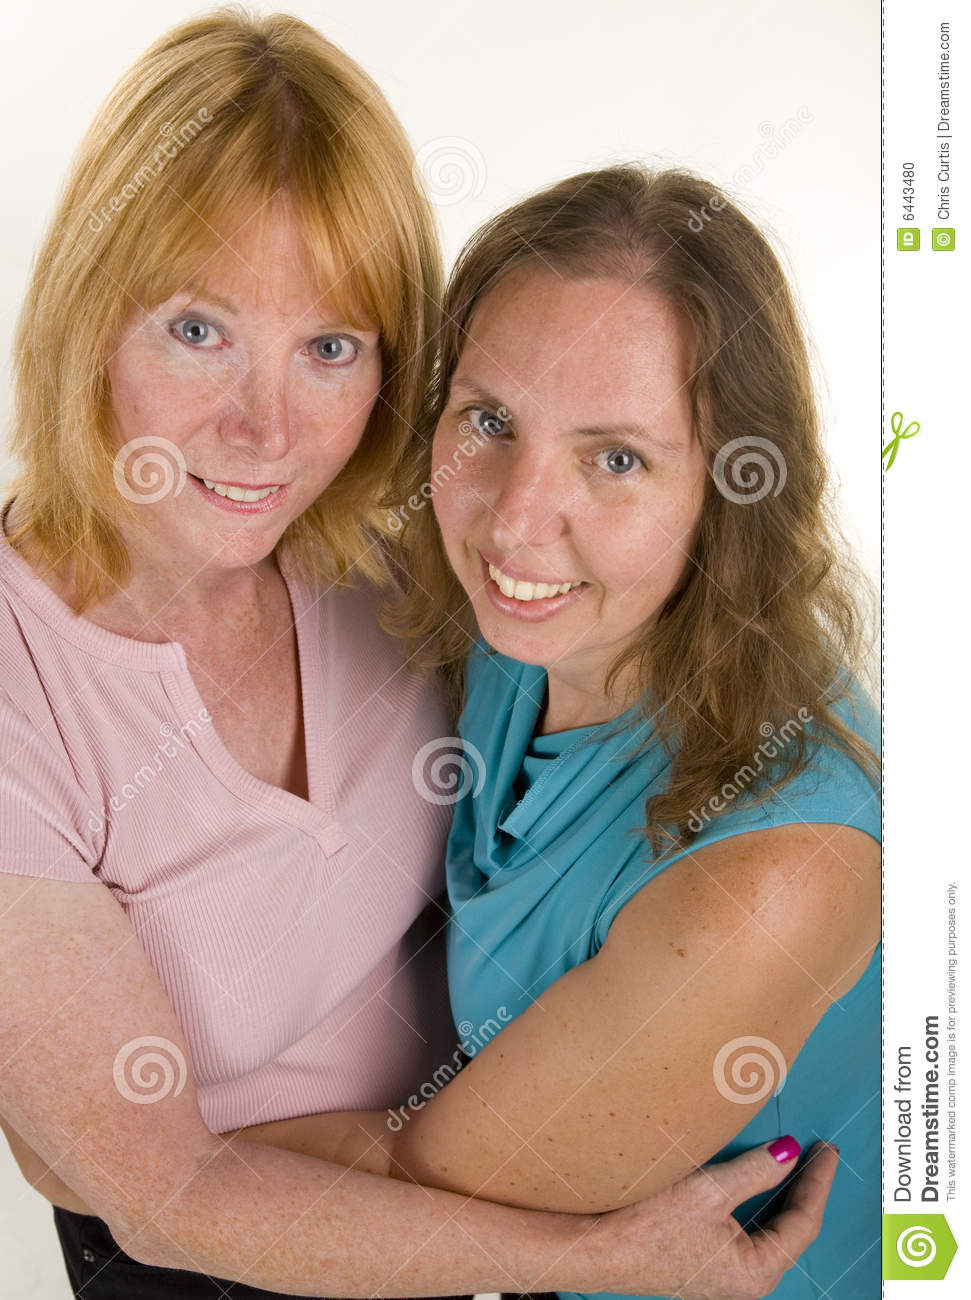 Consider, that mature lesbian pics by women consider